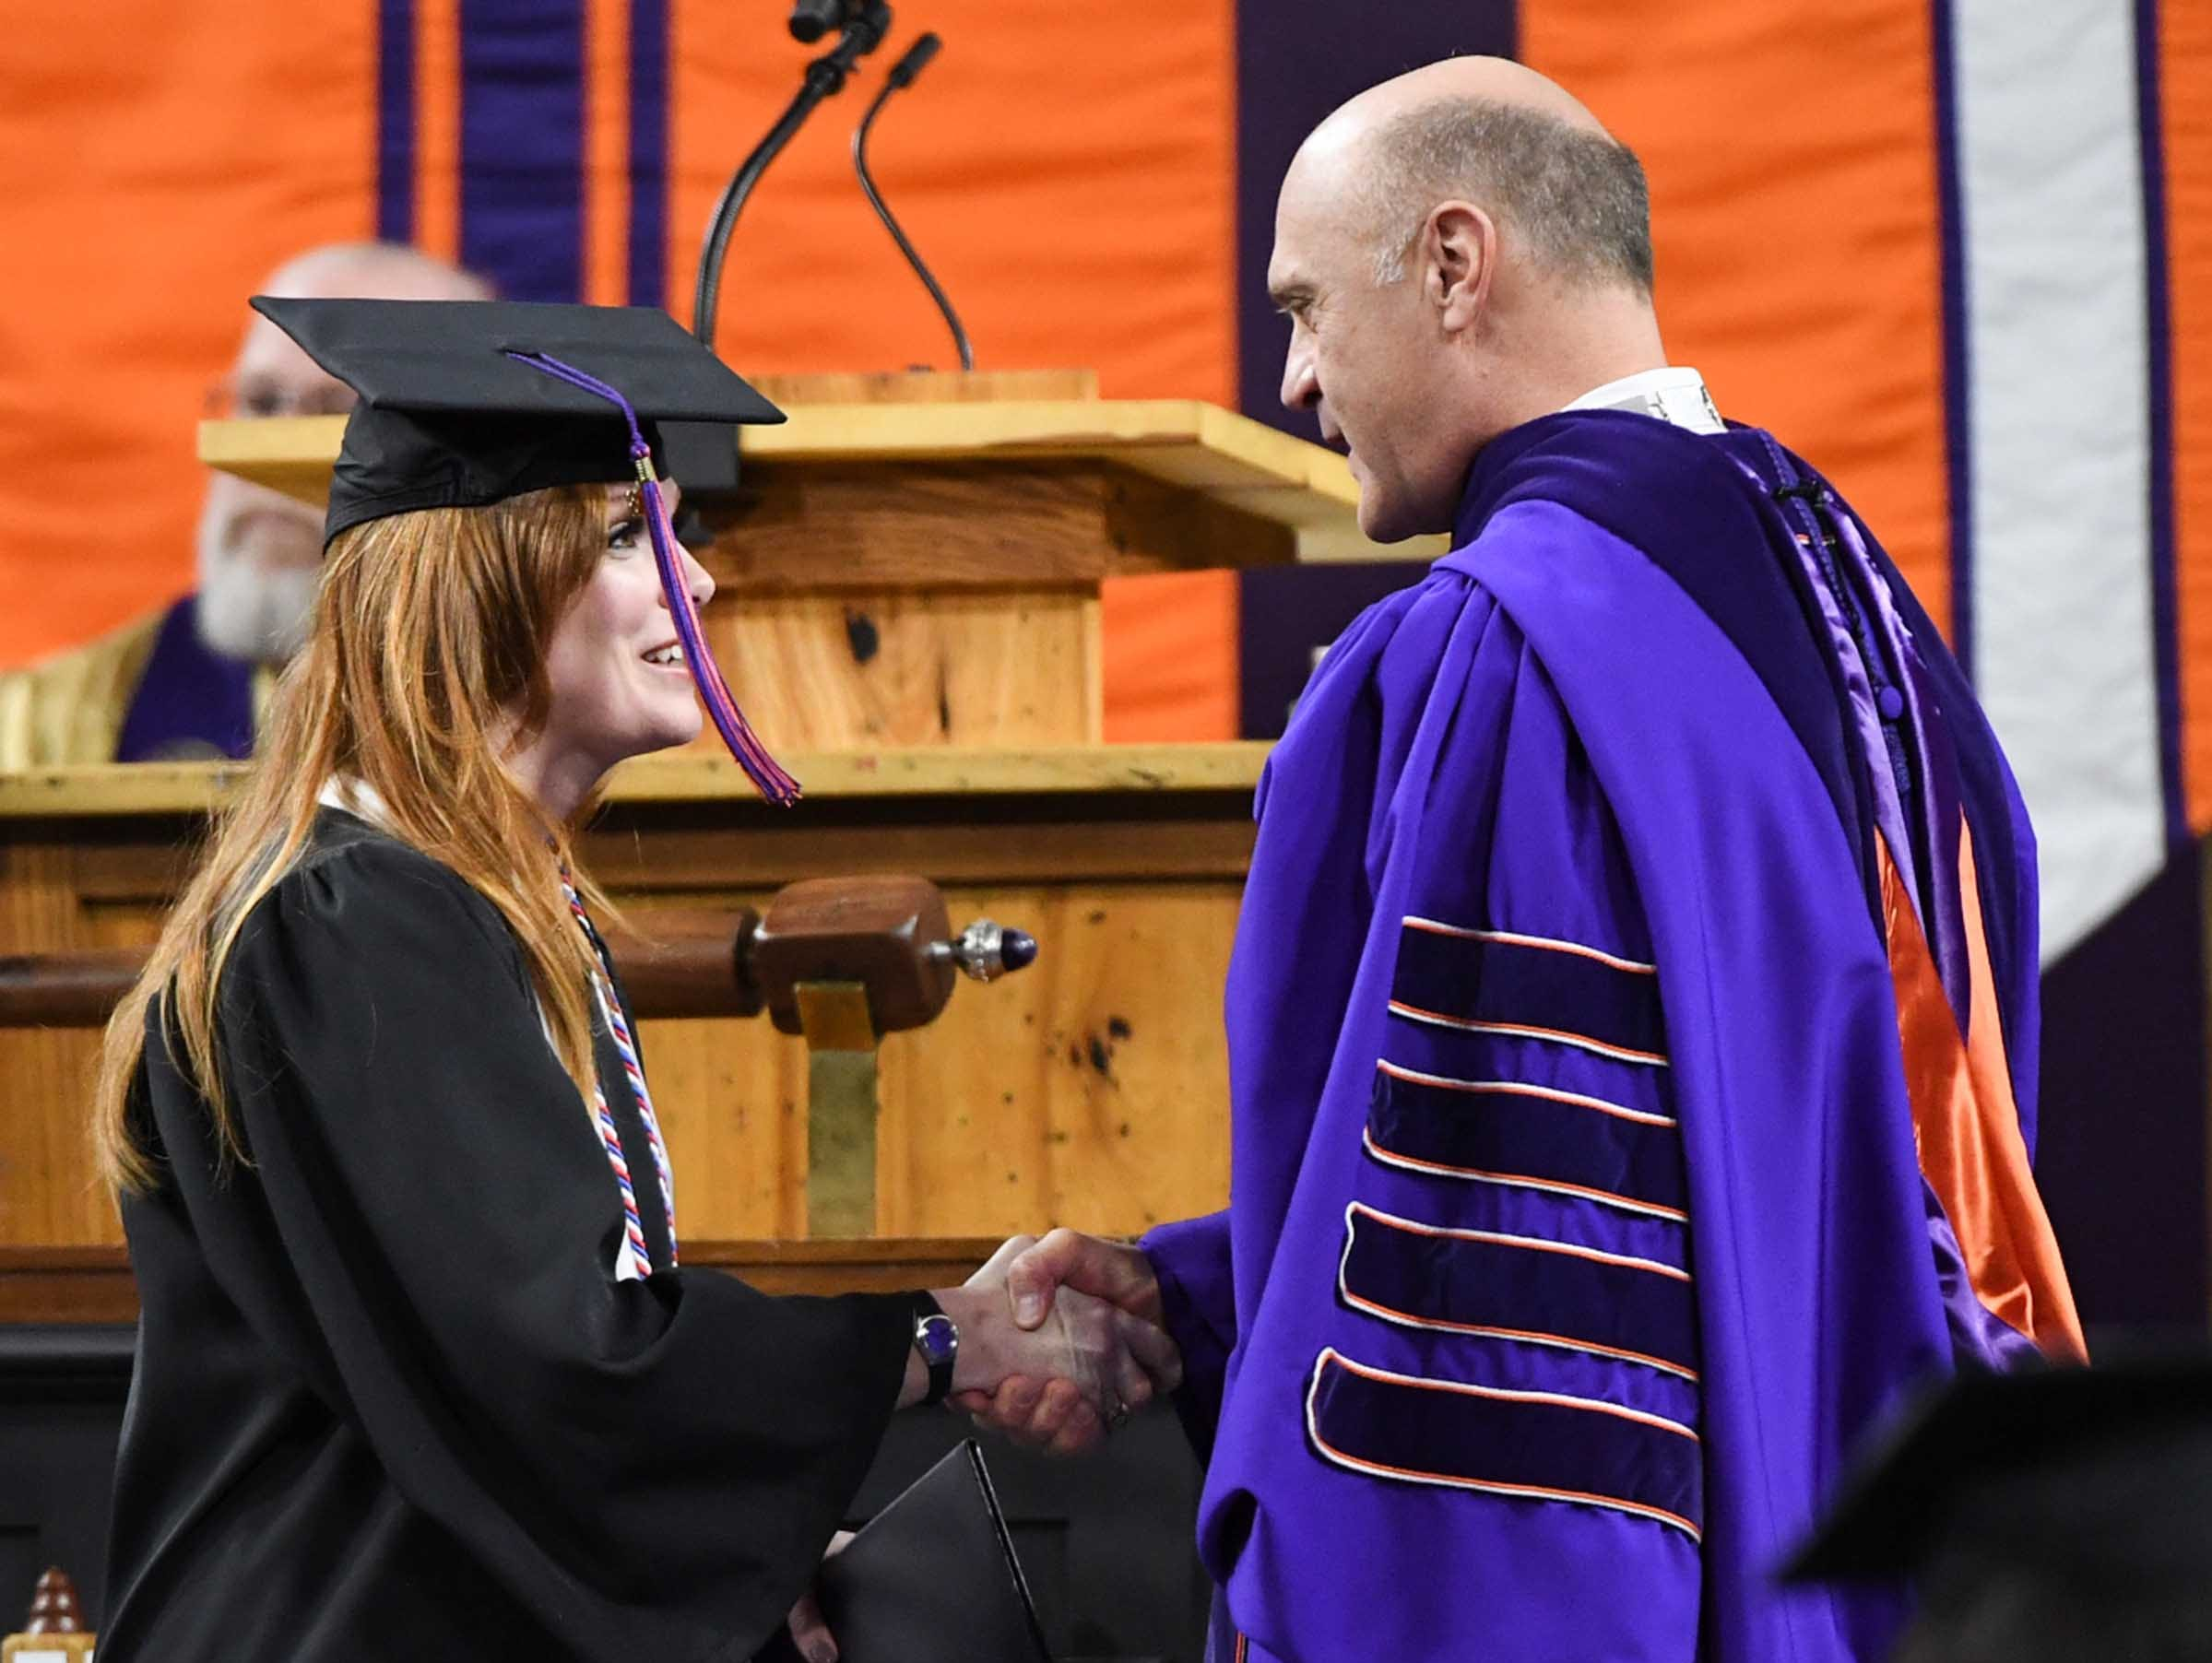 Amanda Nicks gets her diploma for pyschology and shakes hands with President Jim Clements during Clemson University graduation ceremony Thursday morning in Littlejohn Coliseum in Clemson.